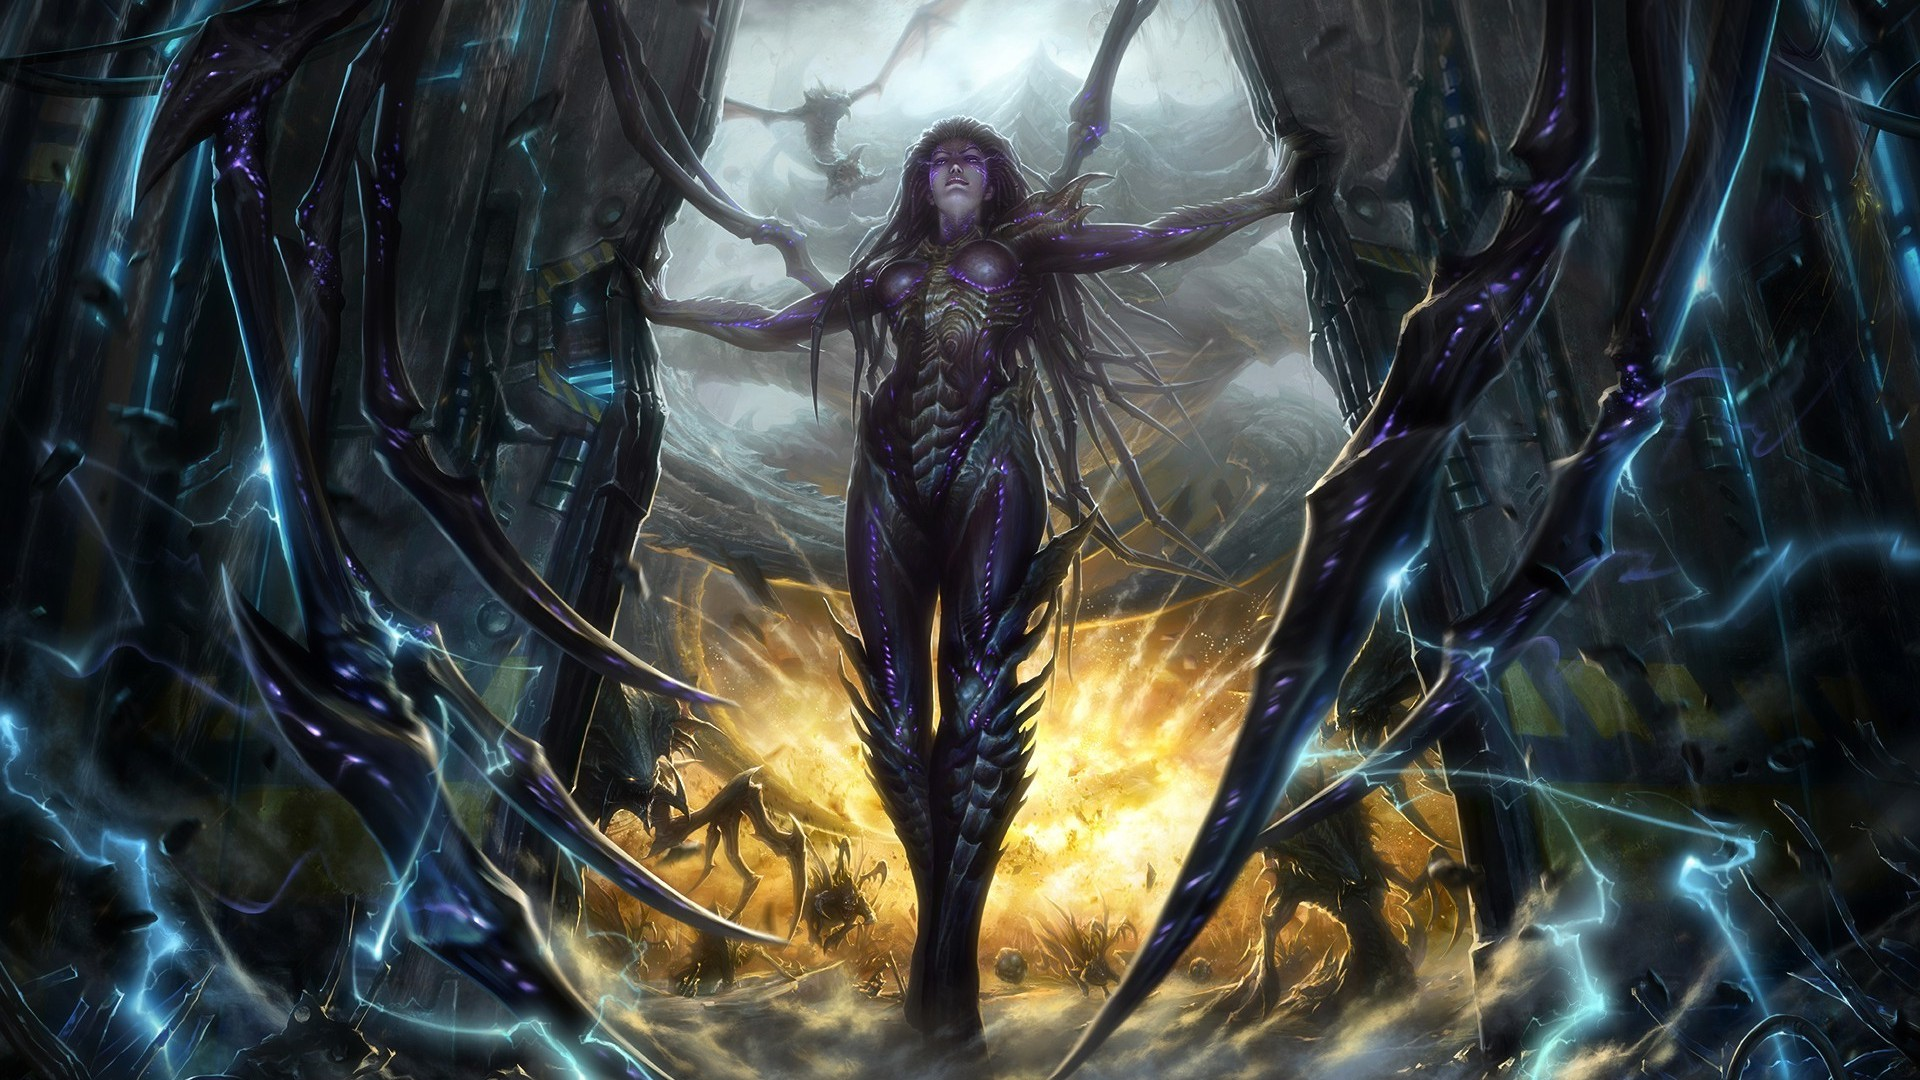 File Sarah Kerrigan Starcraft Game Hd Wallpaper 1920x1080 1912 also 6873968 Gaming Wallpaper further 6958100 Daisies Green Background additionally Charlotte Anime Wallpapers also Colorful background 4 Wallpapers. on tv background wallpaper